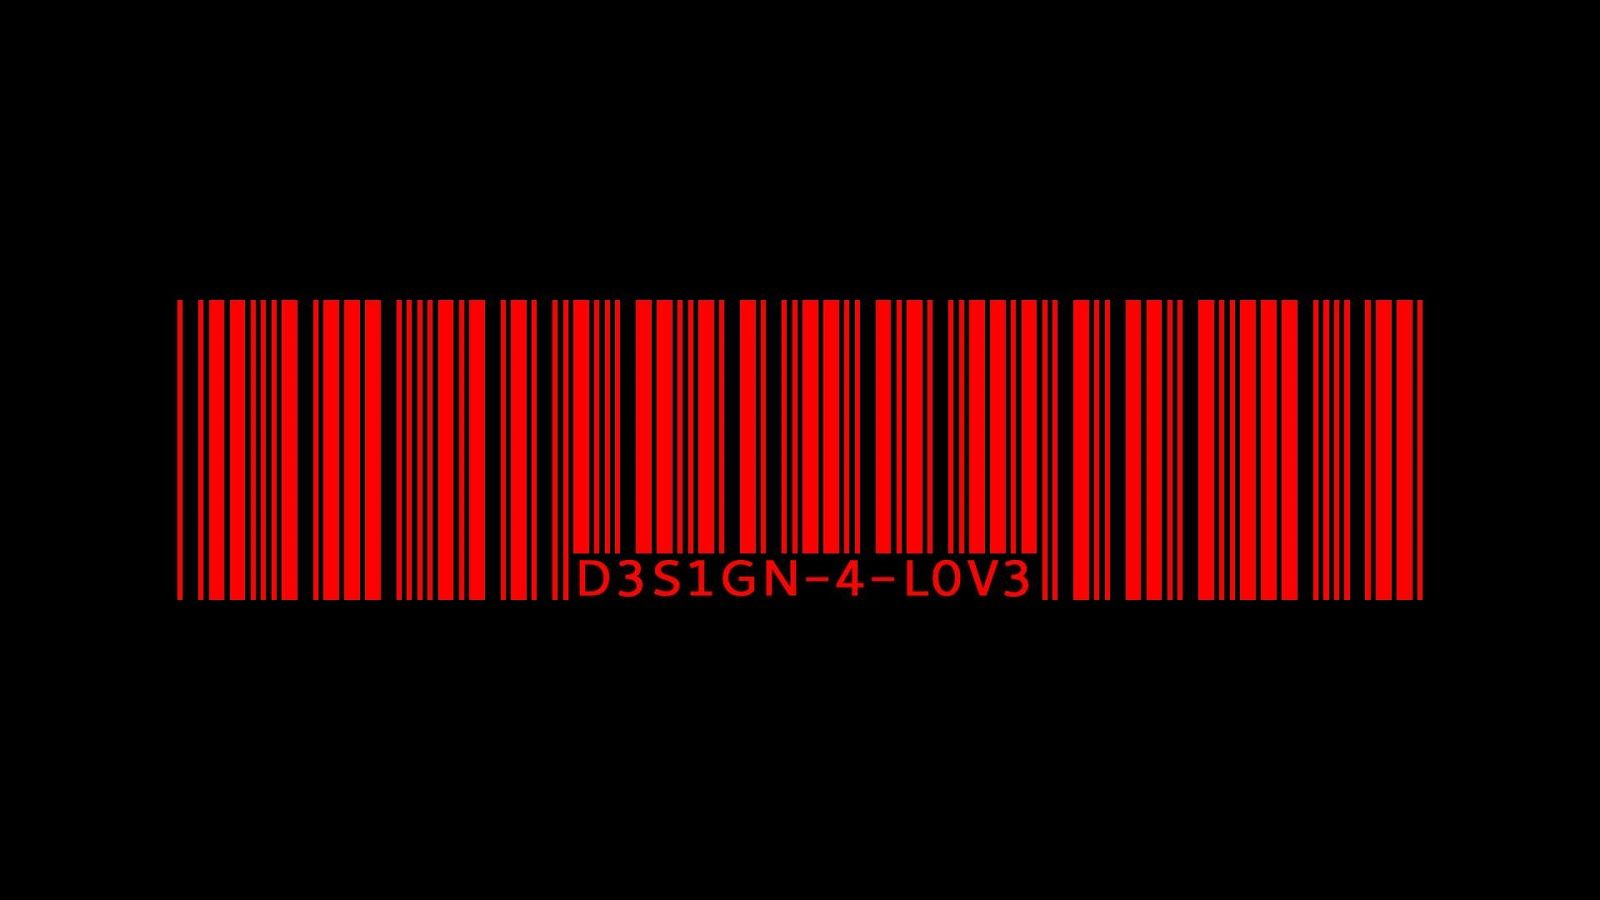 Hd wallpaper red and black - Red White And Black Backgrounds Red Barcode Black Red Wallpaper Black And White